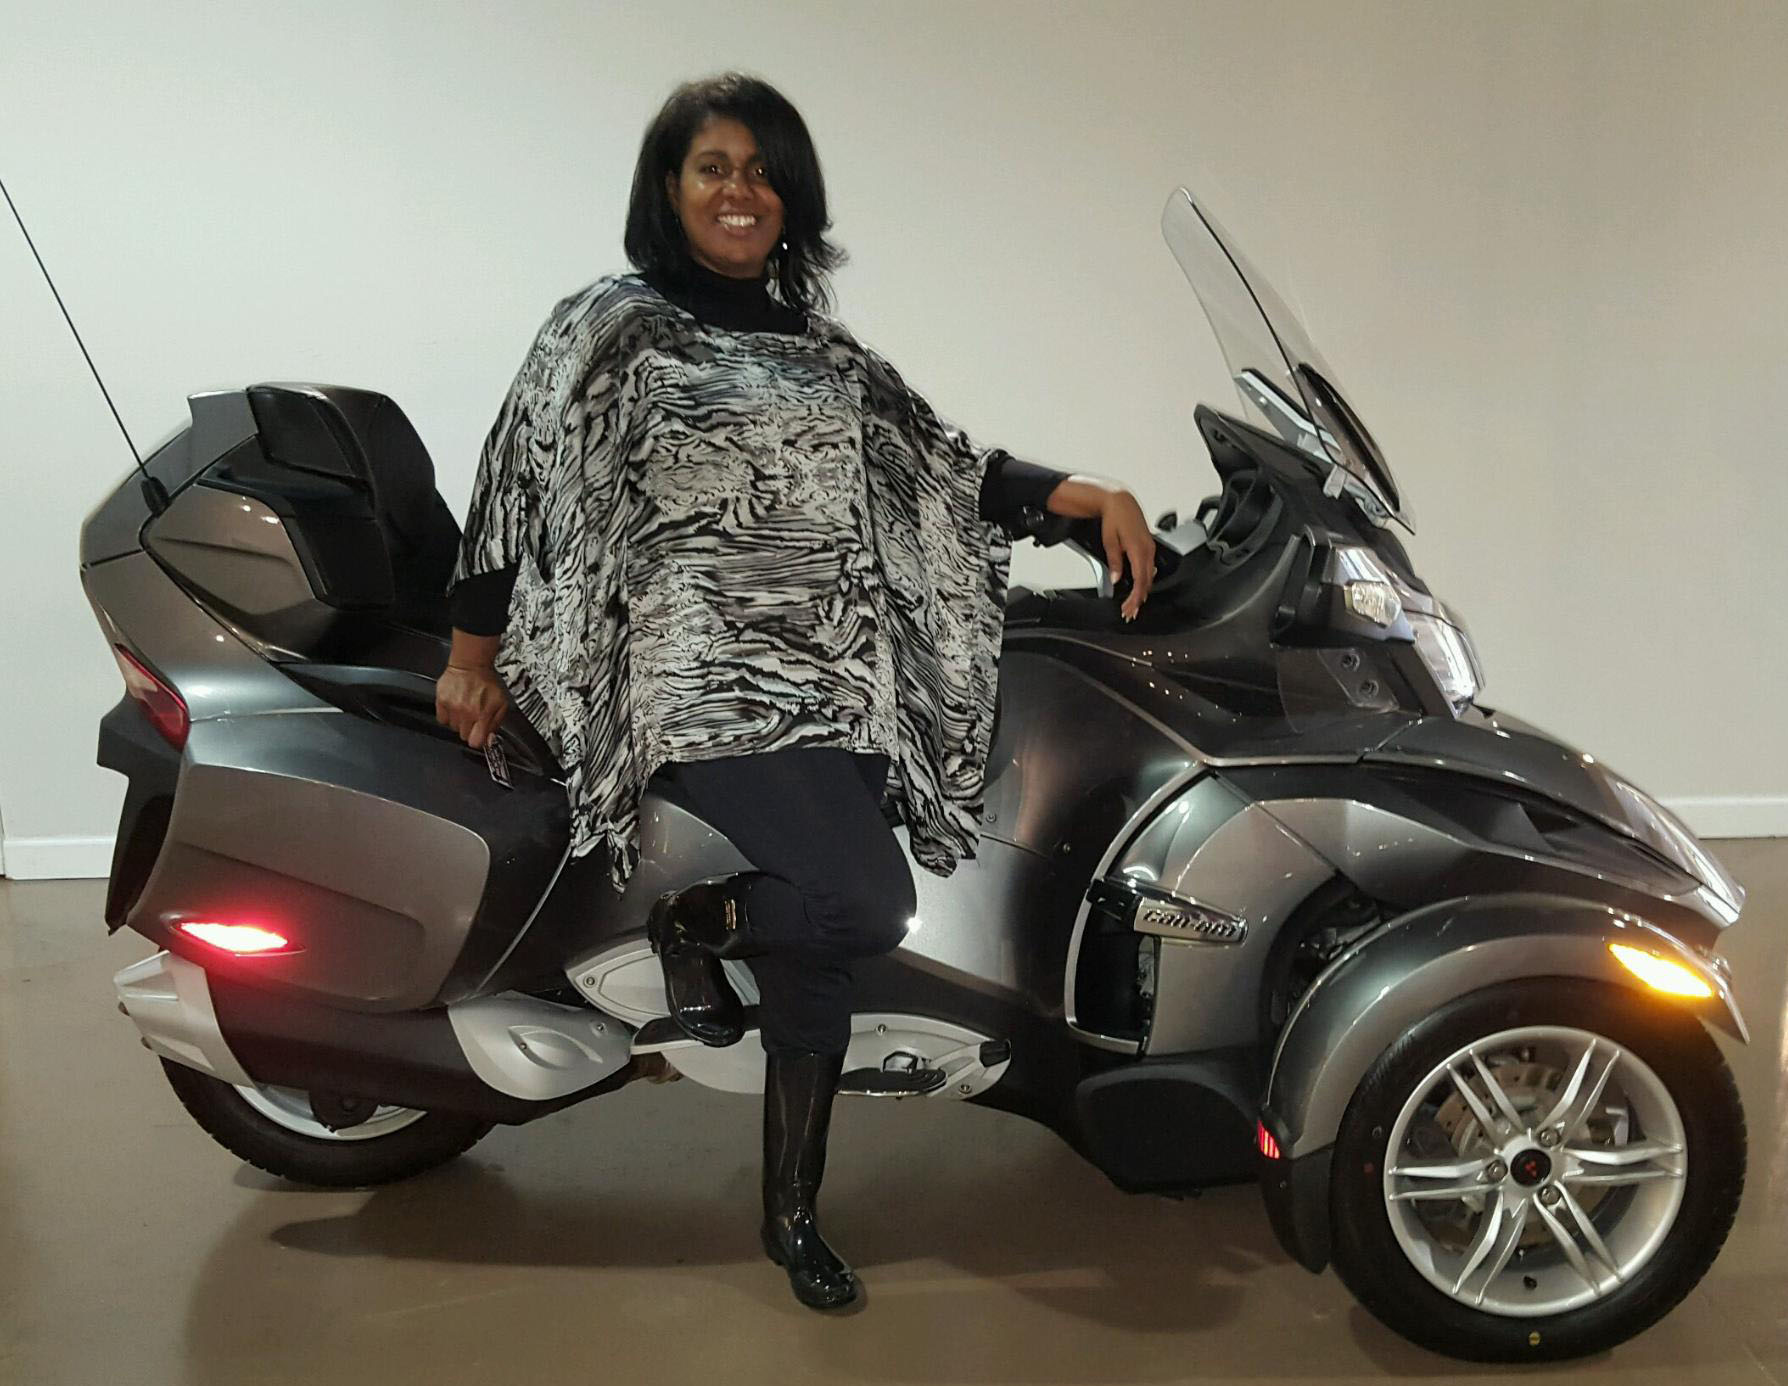 Tina S. with her 2012 Can-Am Spyder RT SE5